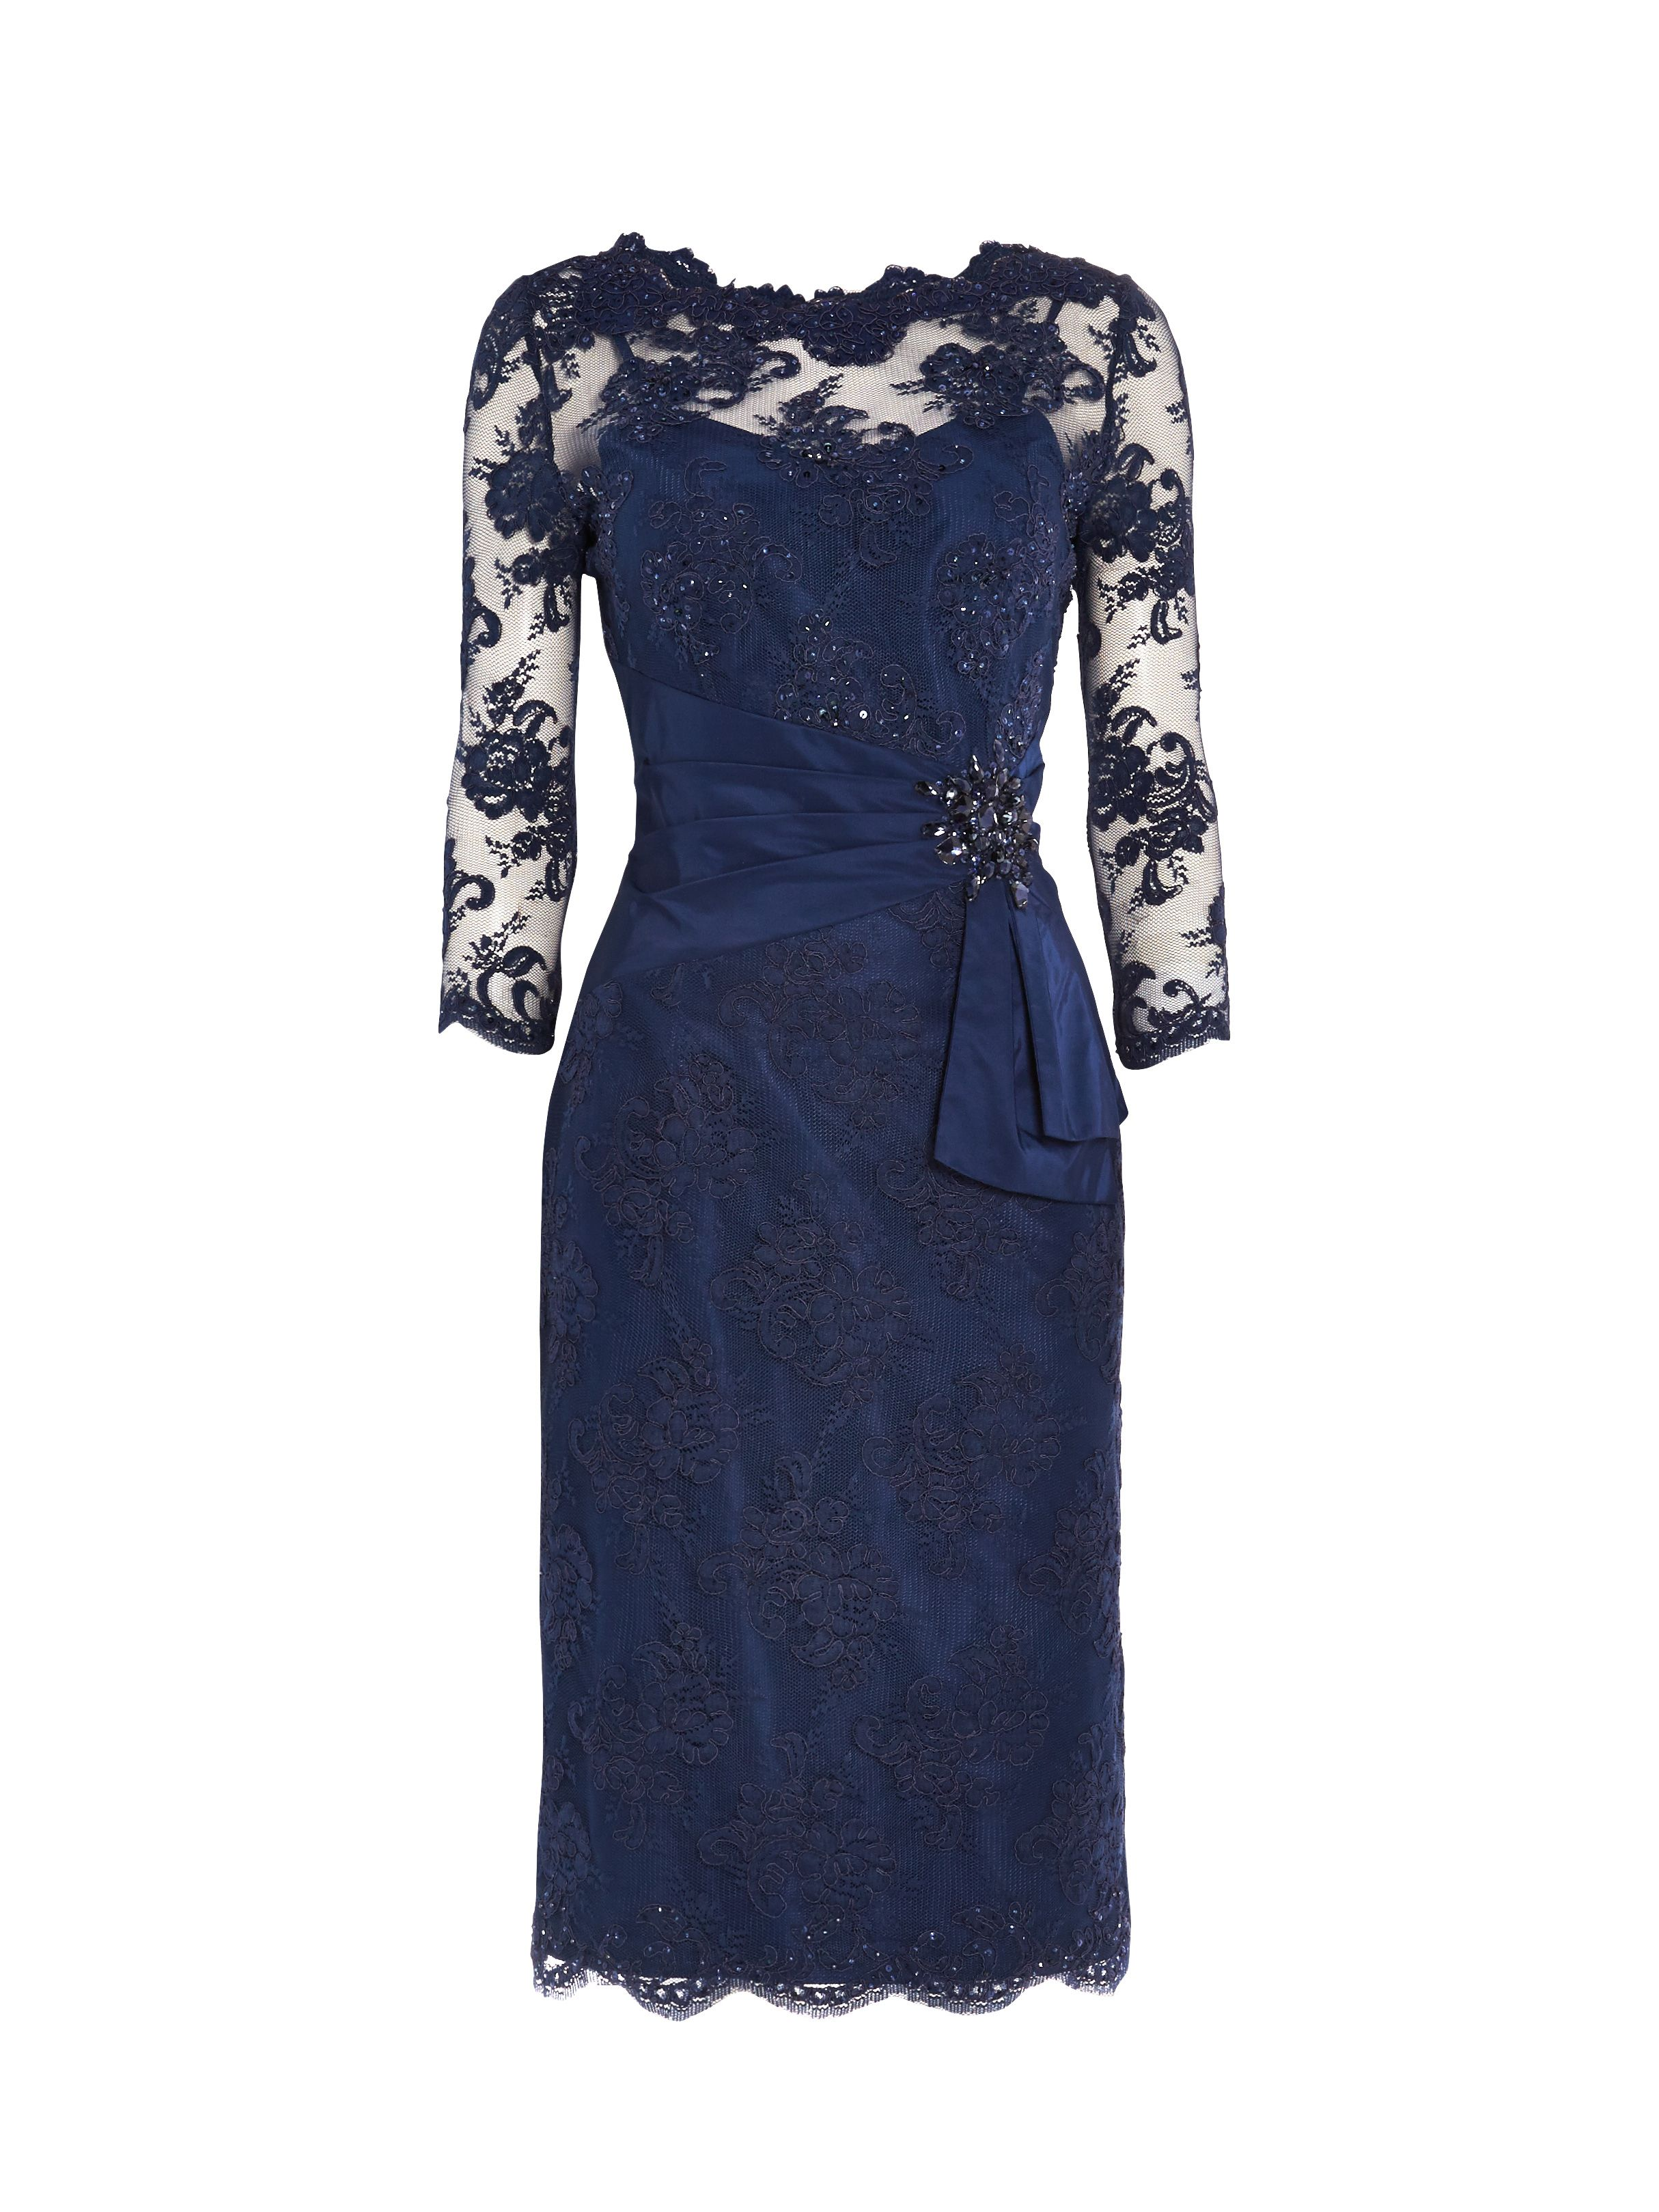 ANOUSHKA G Megan lace dress with embellishment, Blue